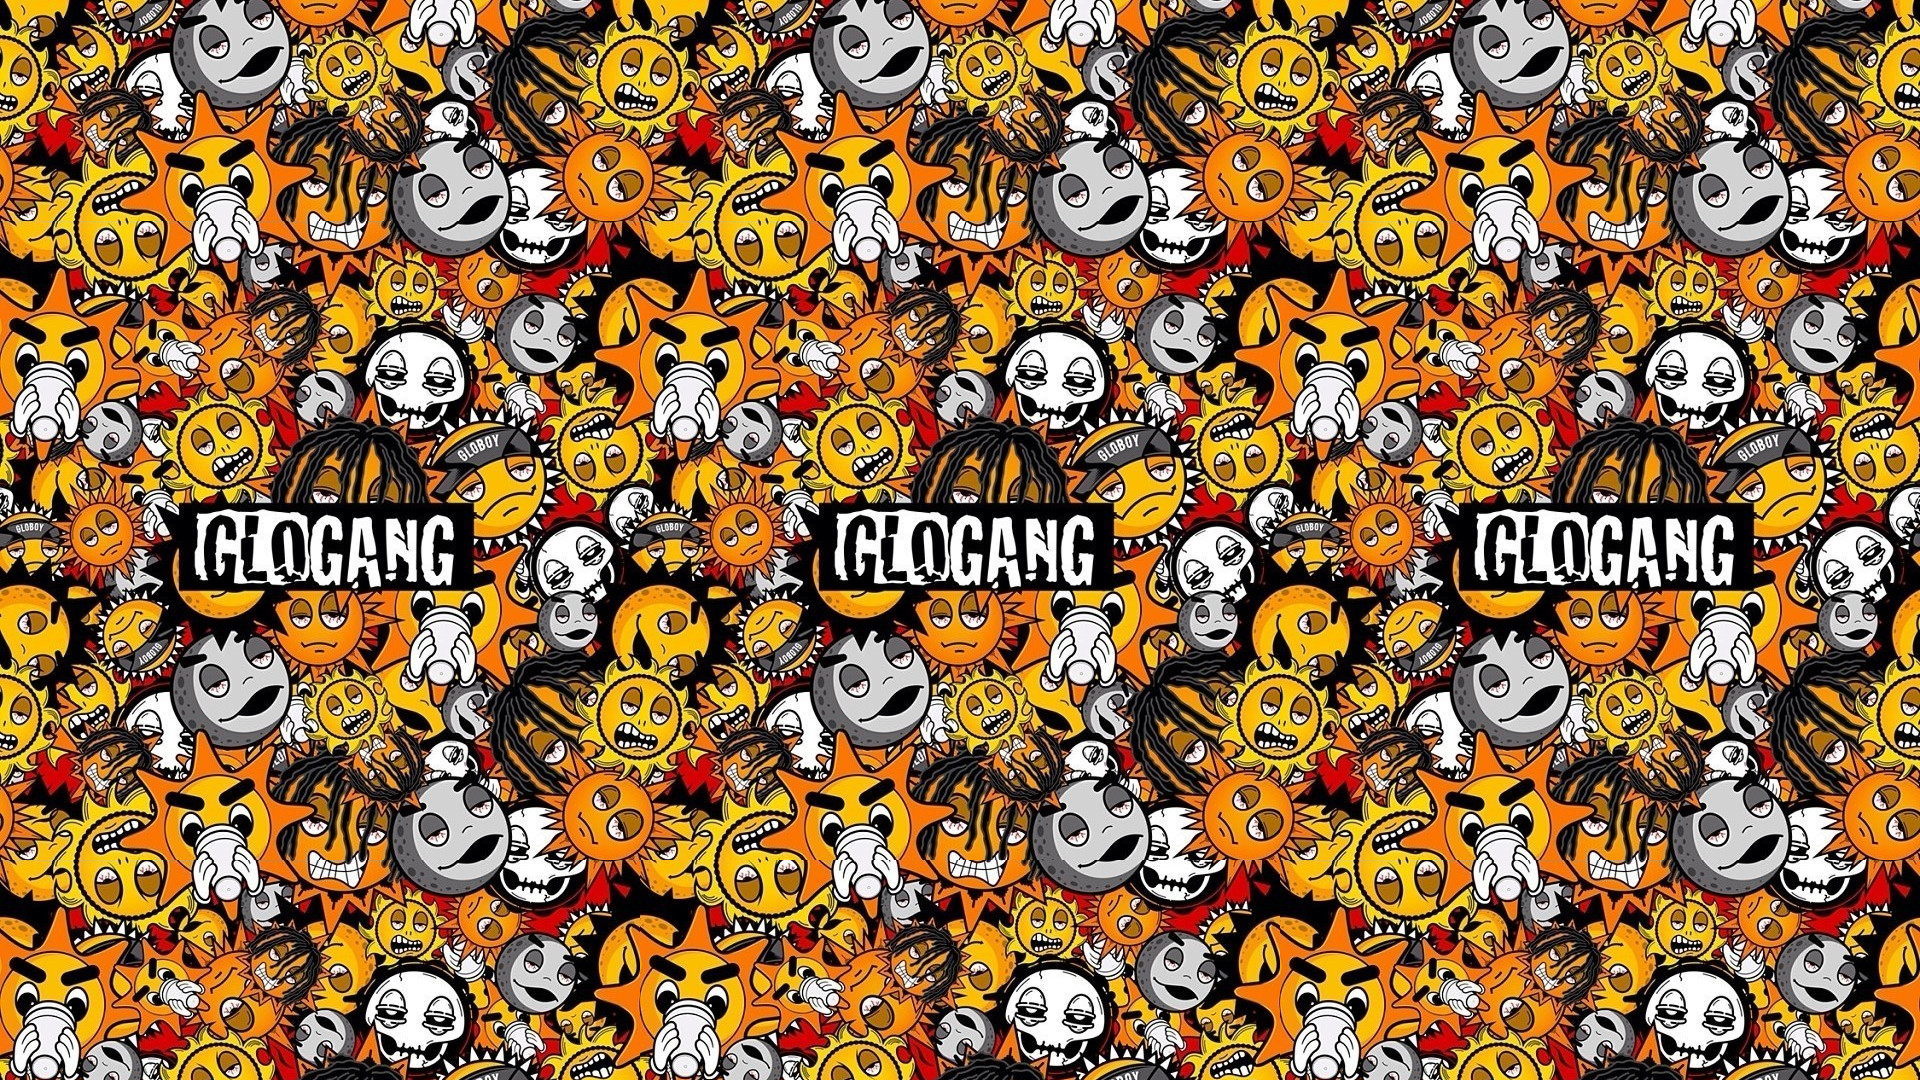 1920x1080 Glo Gang Wallpaper Related Keywords & Suggestions - Glo Gang Wallpaper